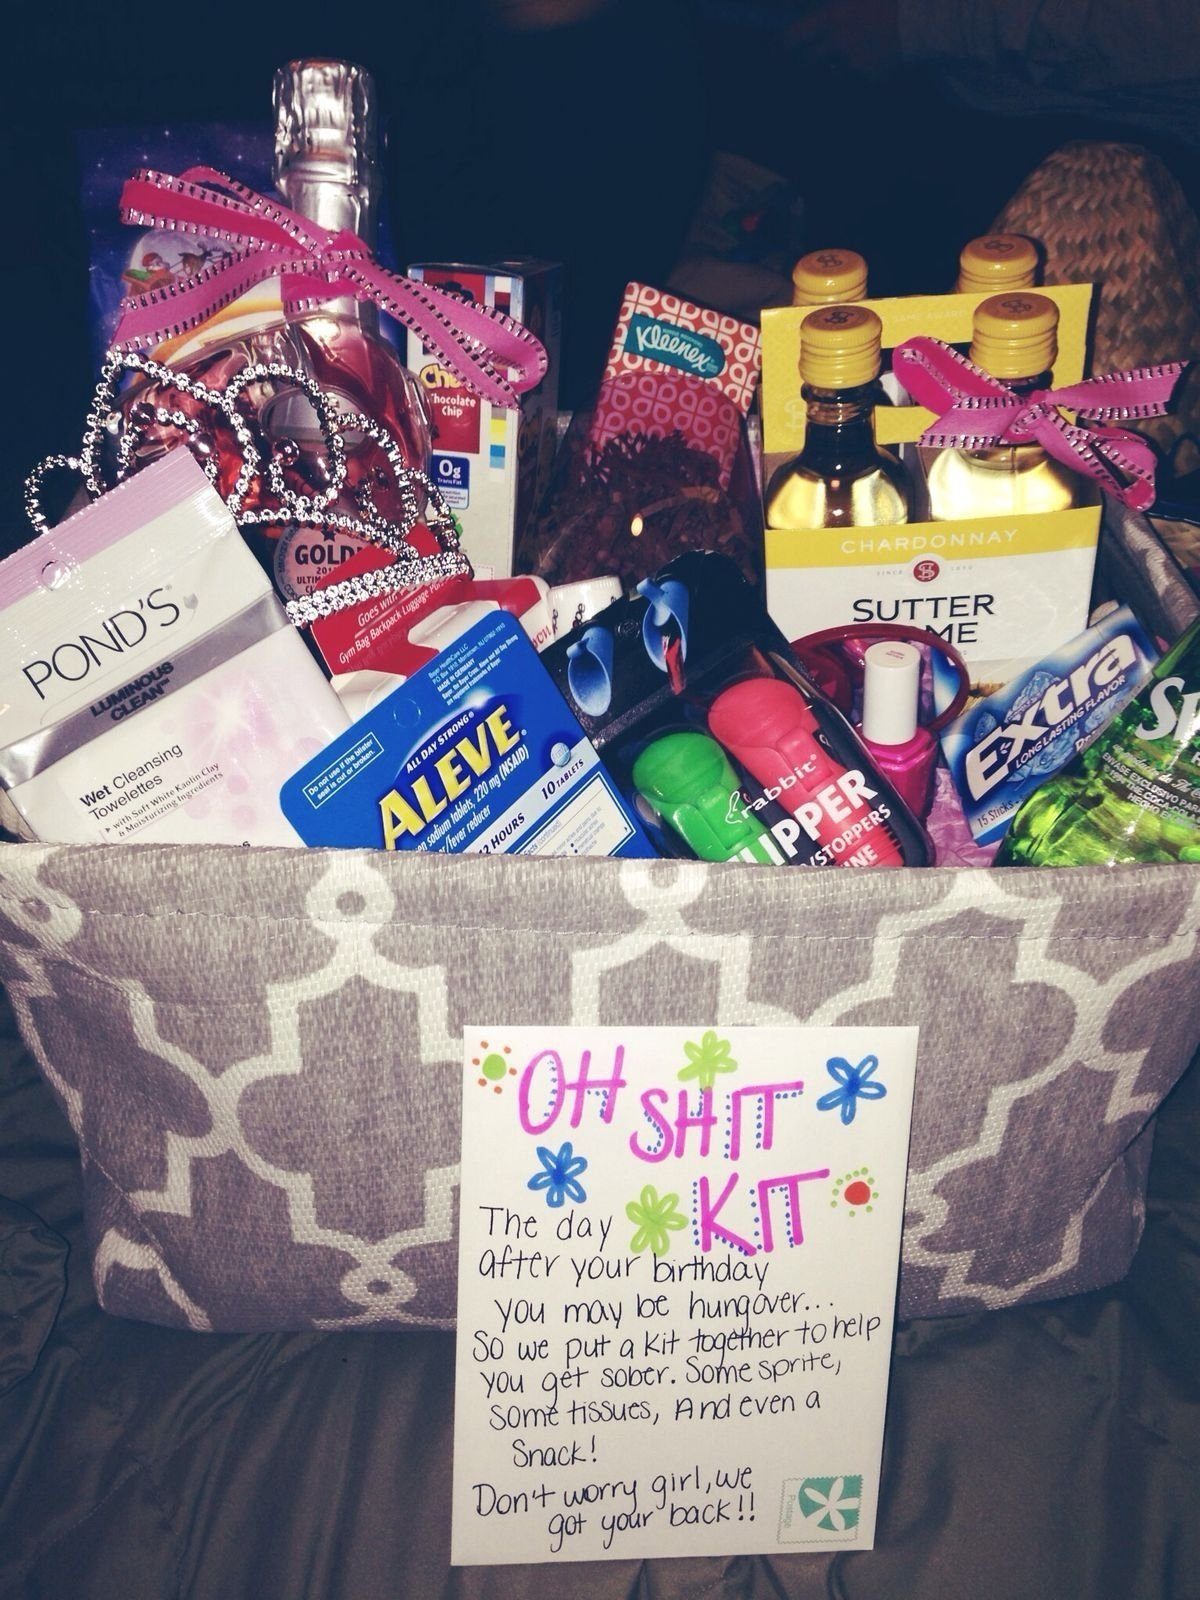 10 Fabulous Cute Gift Ideas For Her oh shit kit cute idea only 2 more years till k can legally drink 5 2021